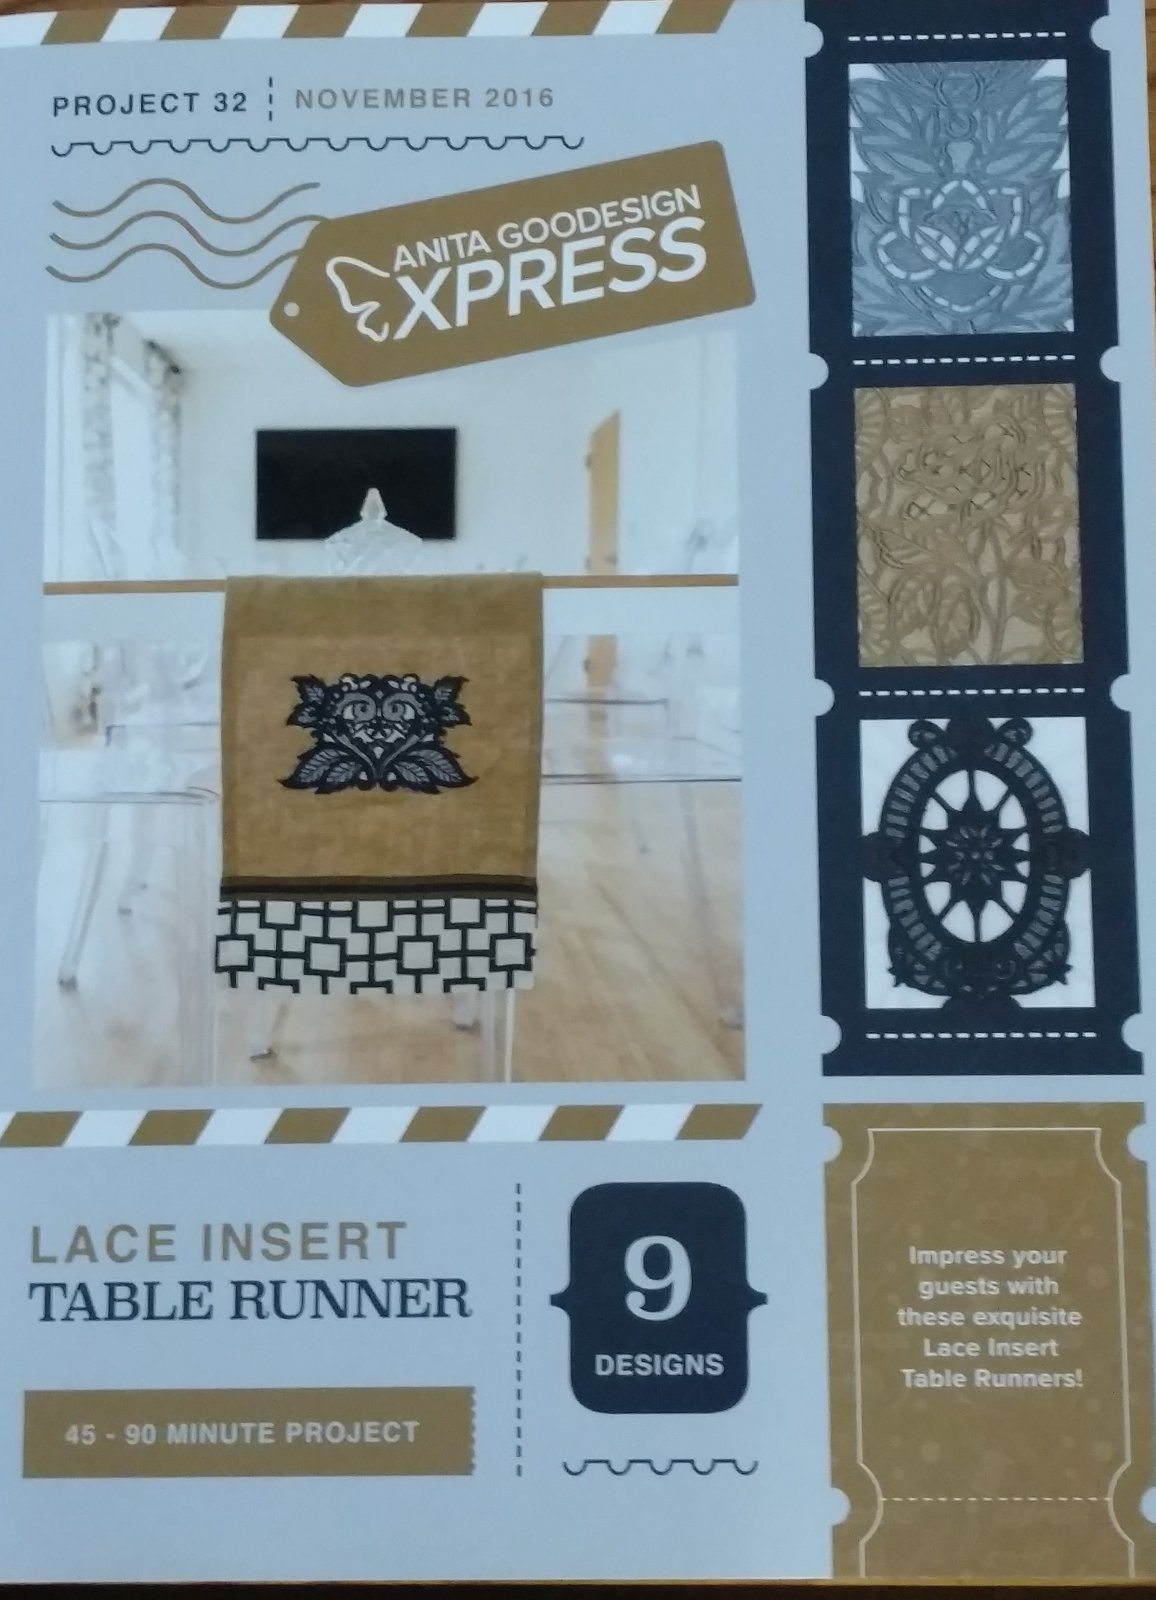 Lace Table Runner - Anita Goodesigns Express projects